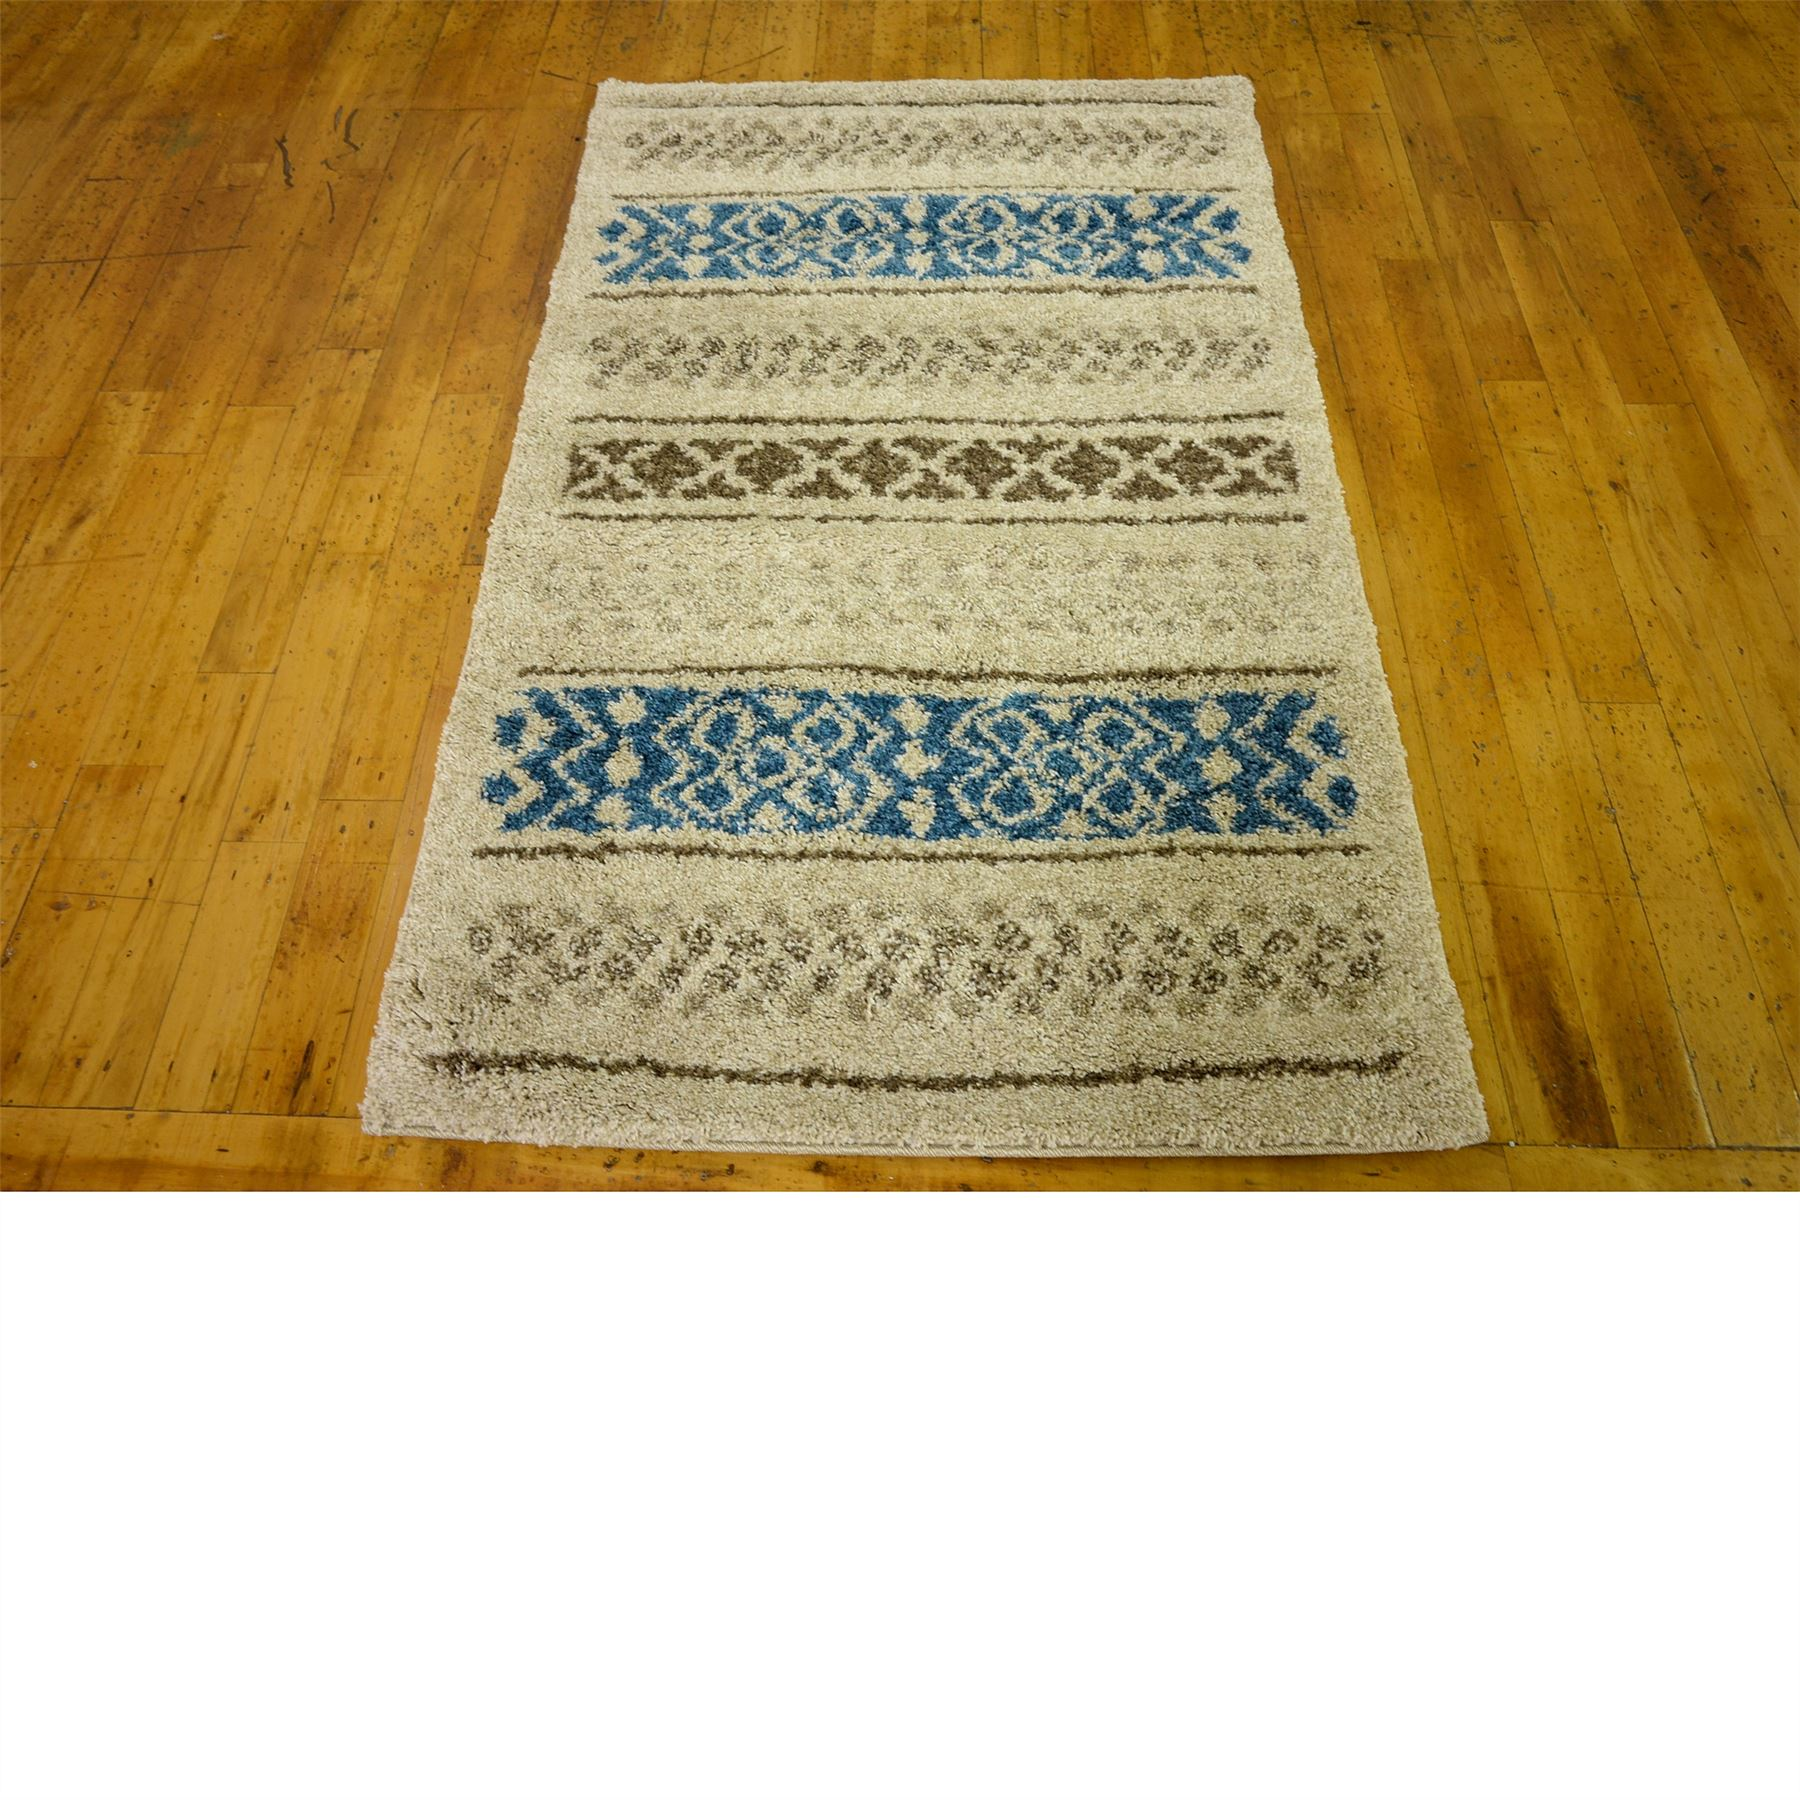 Modern Looking Rug: Contemporary Style Rugs New Carpets Area Rug Floor Carpet